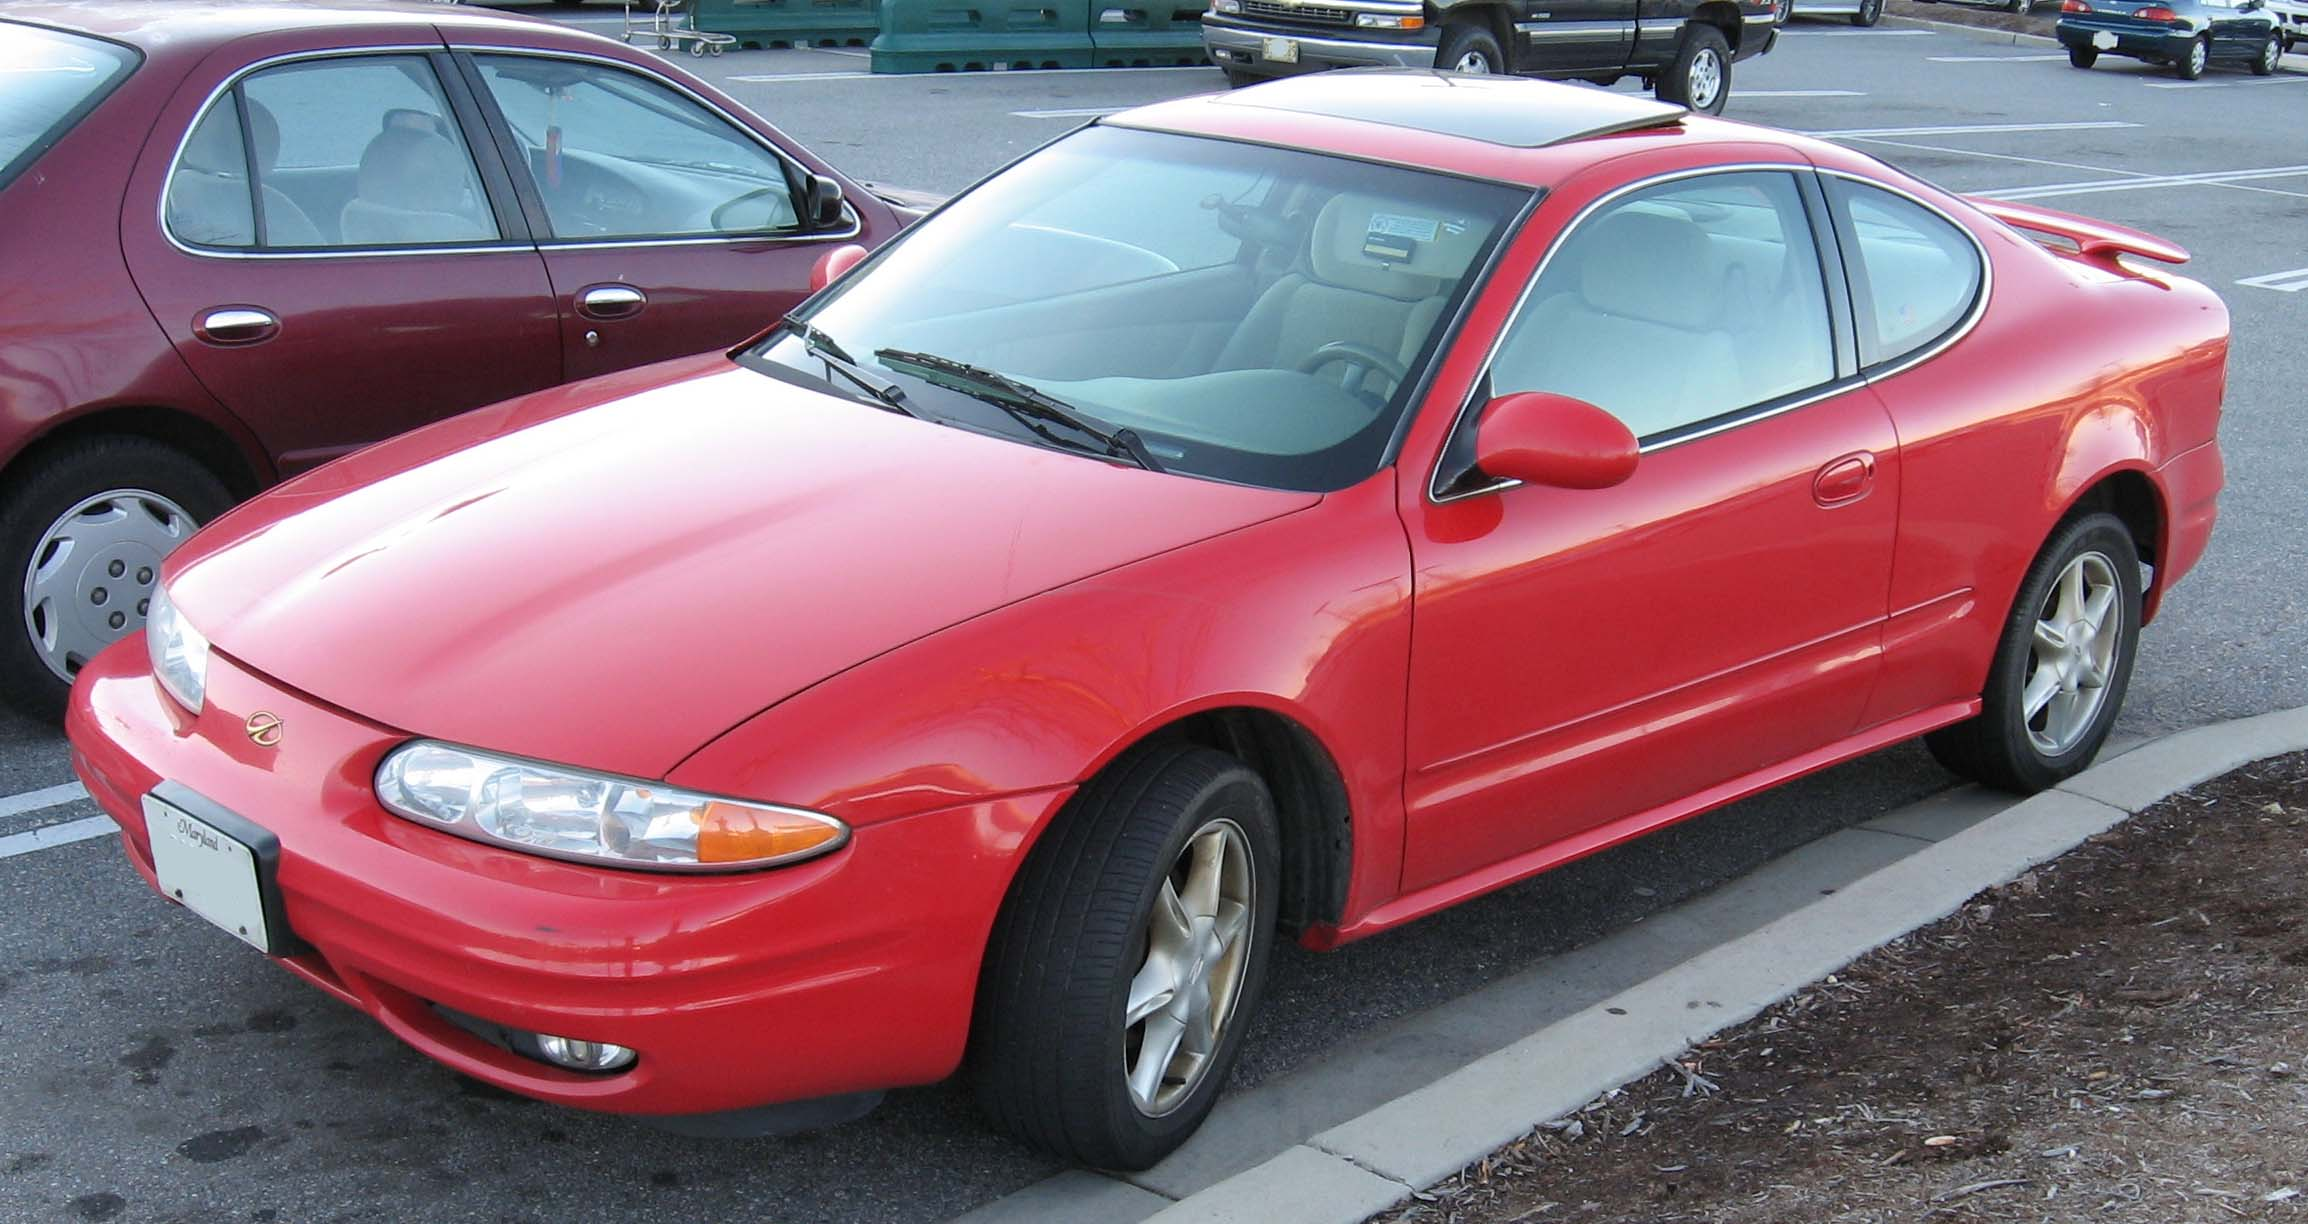 Oldsmobile Alero red #1